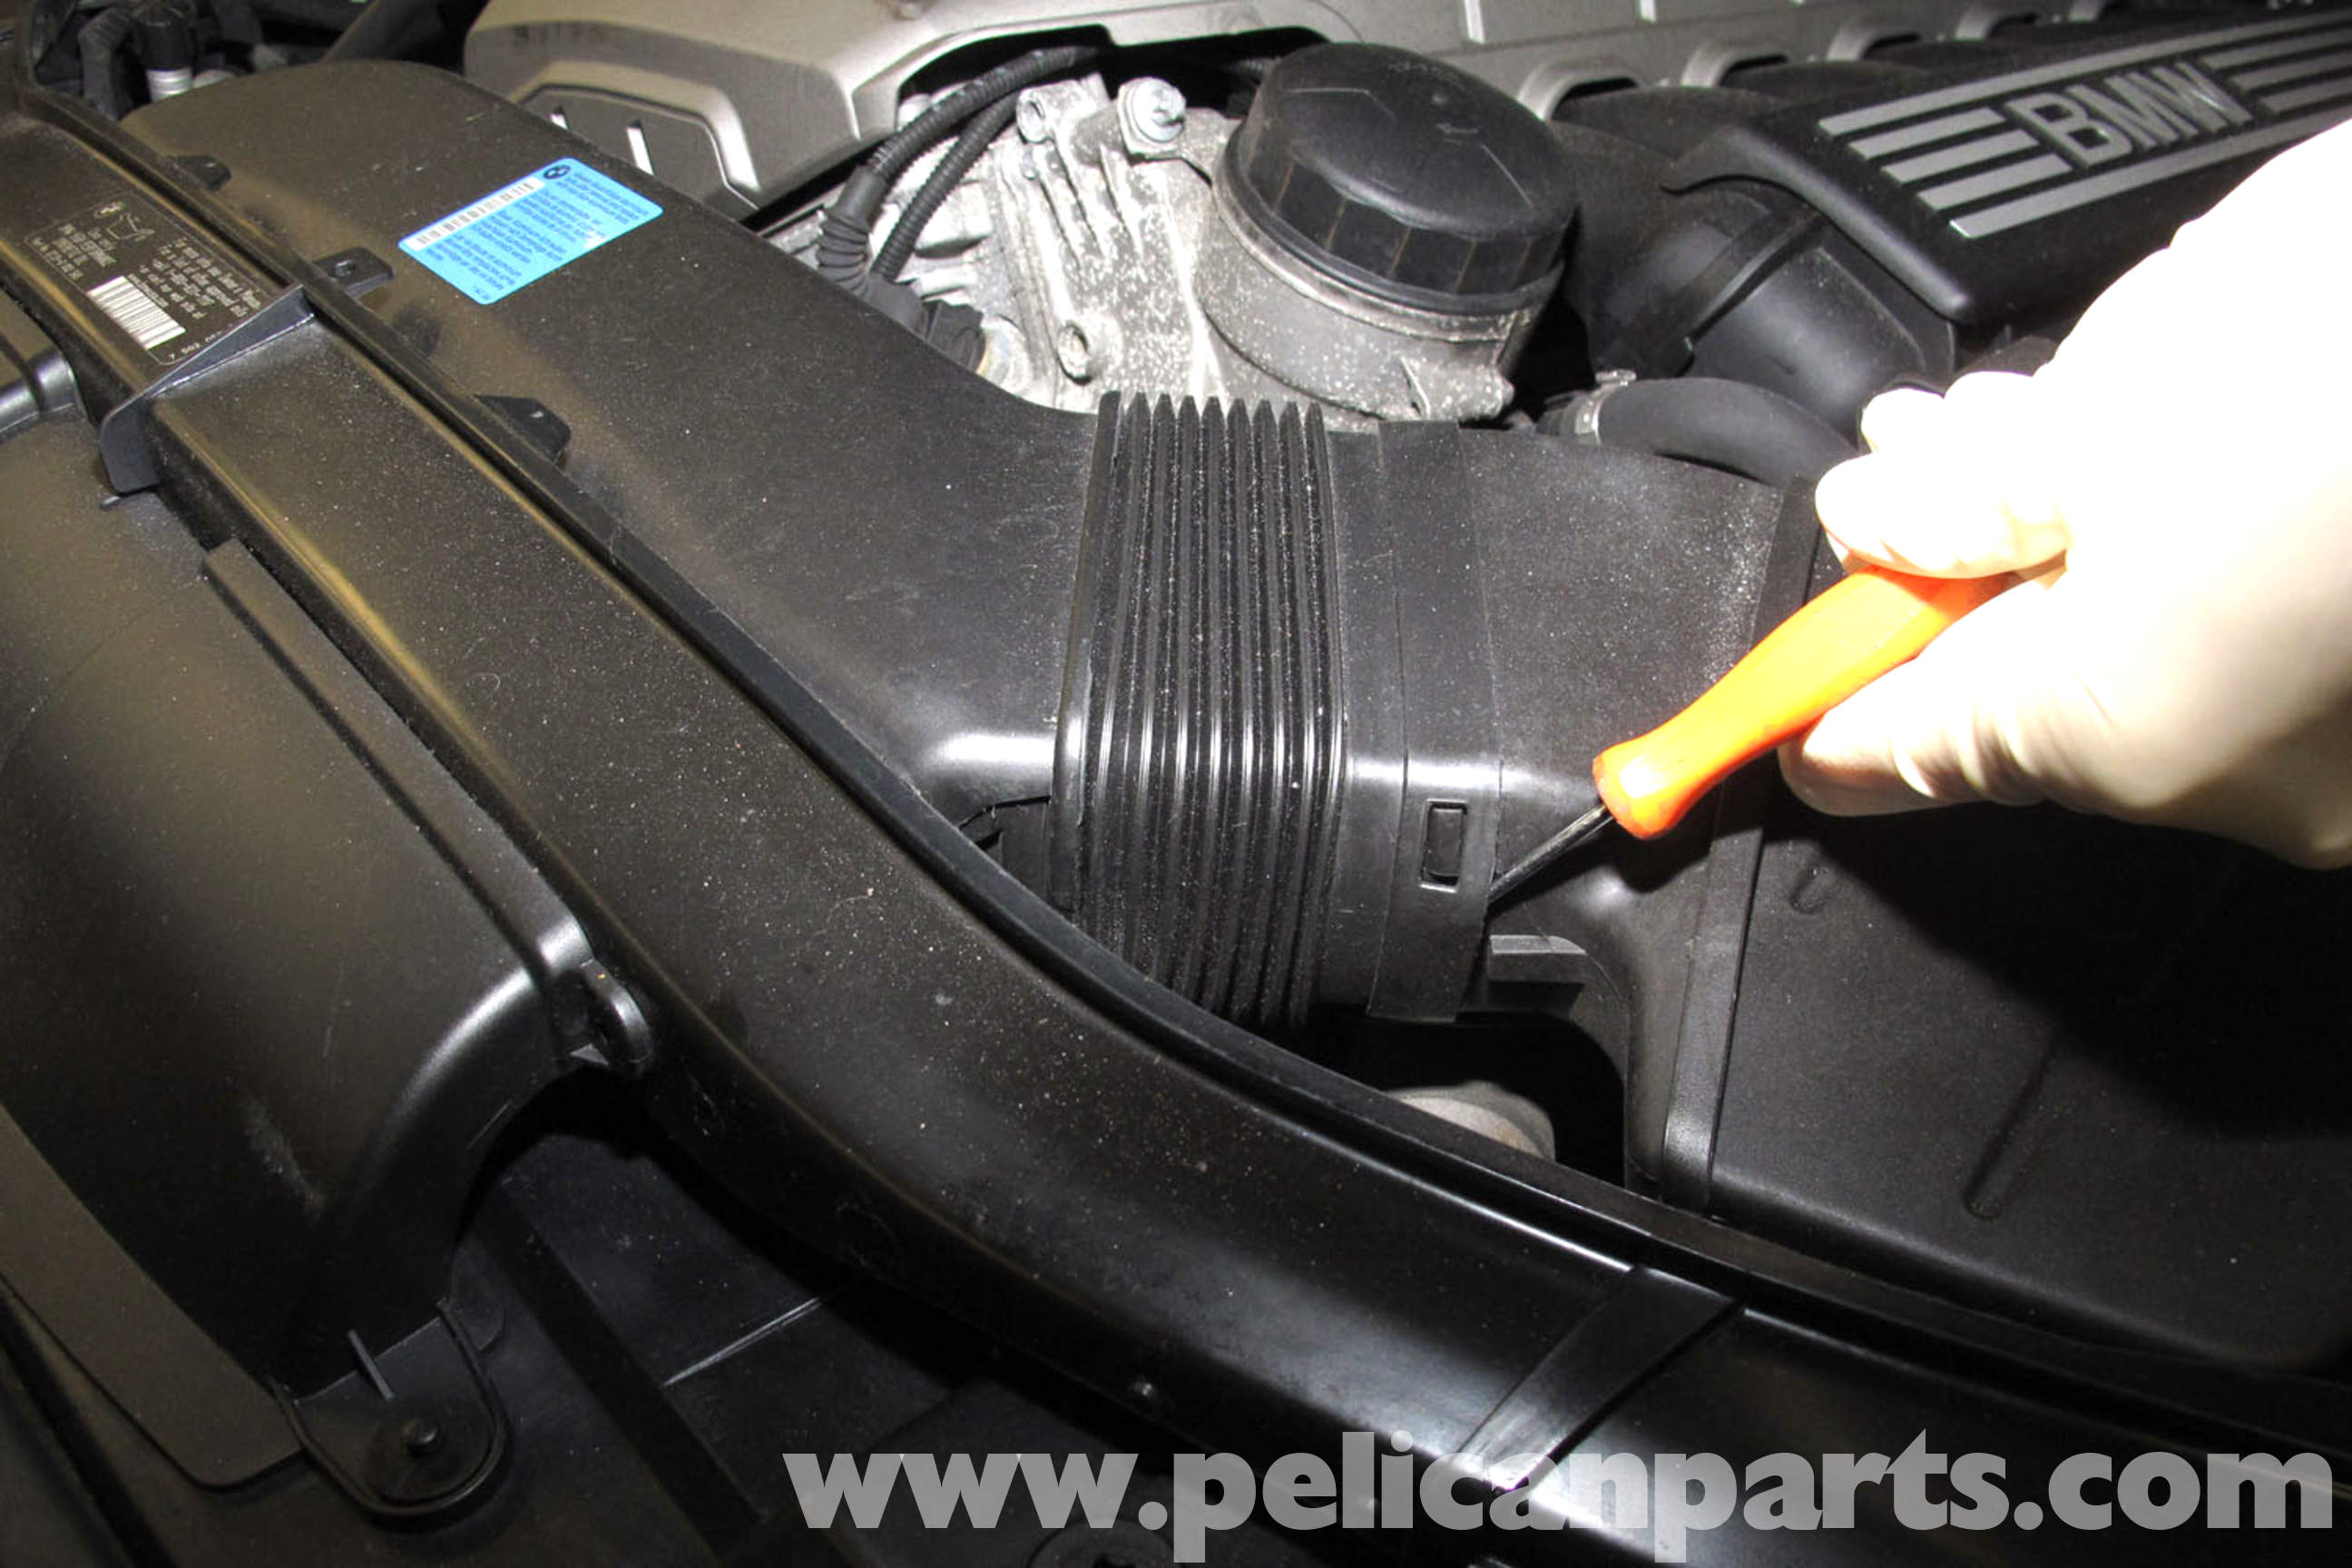 pic03 bmw e90 camshaft position sensor replacement e91, e92, e93 BMW E90 Music-Diagram at gsmx.co